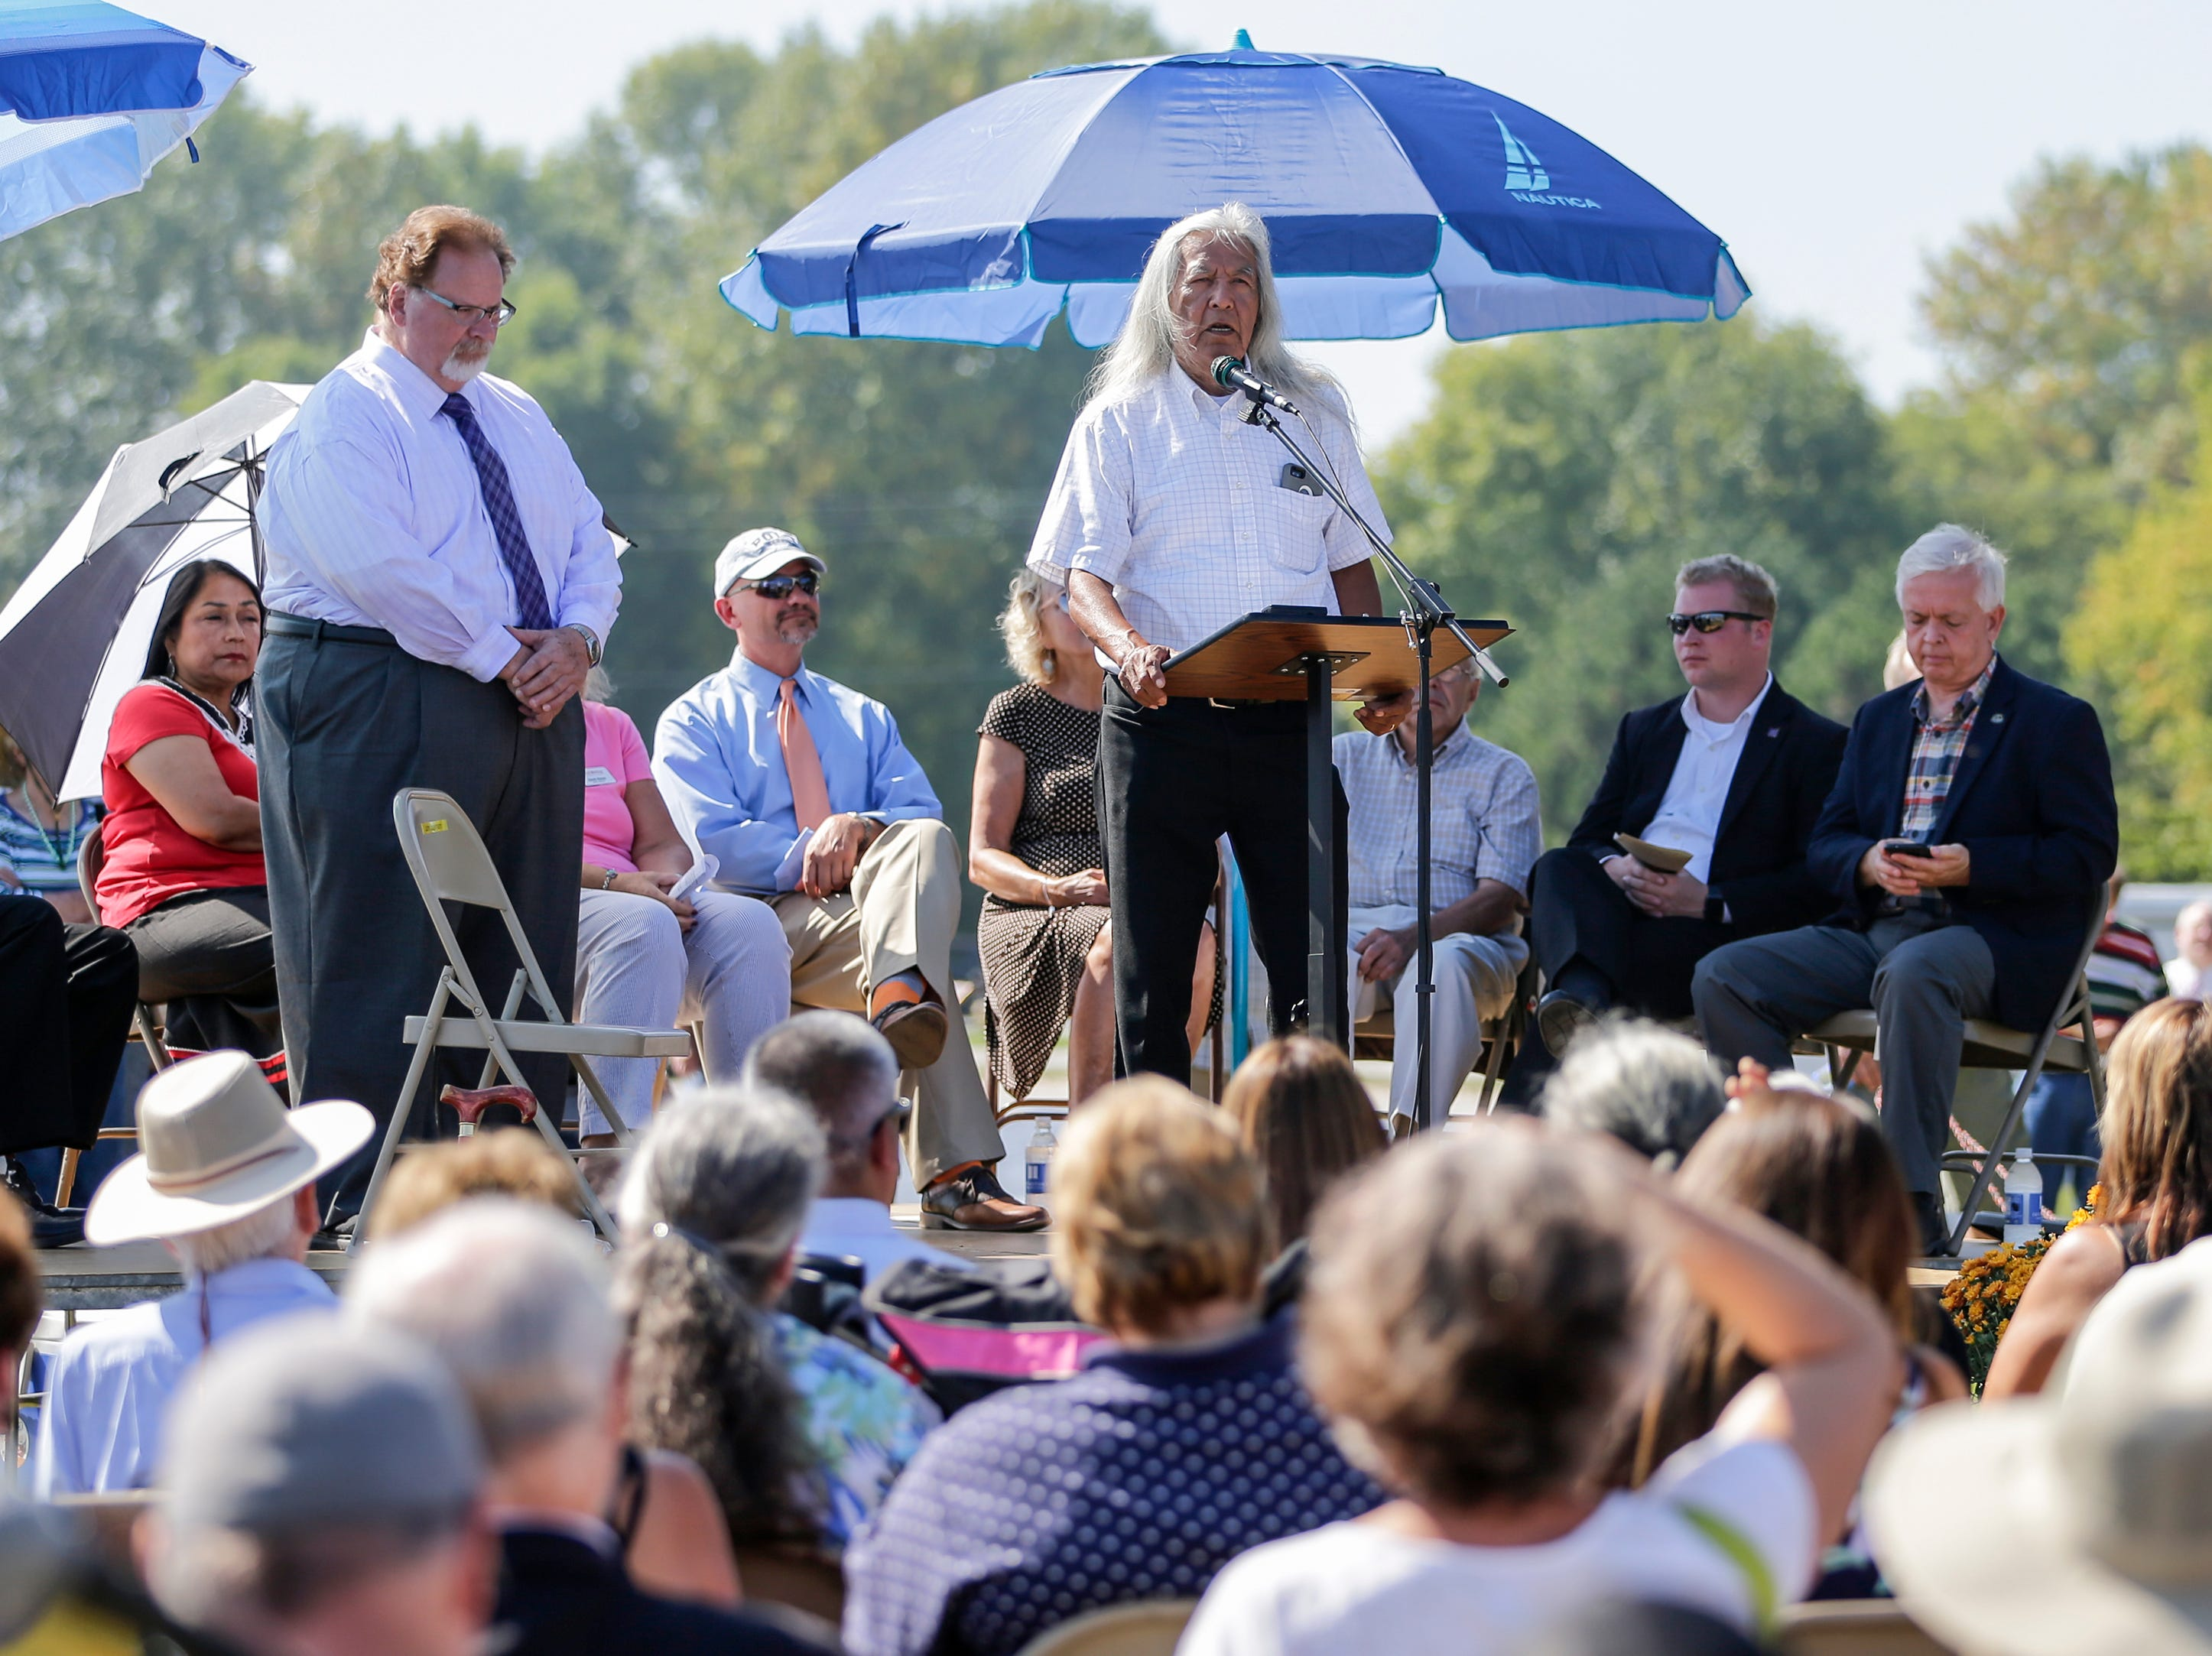 Earl Meshigaud, cultural director for Hannahville Potawatomi and great-great grandson of Chief Mishicot, opens the Spirit of the Rivers monument dedication Sunday, Sept. 16, 2018, in Two Rivers, Wis.